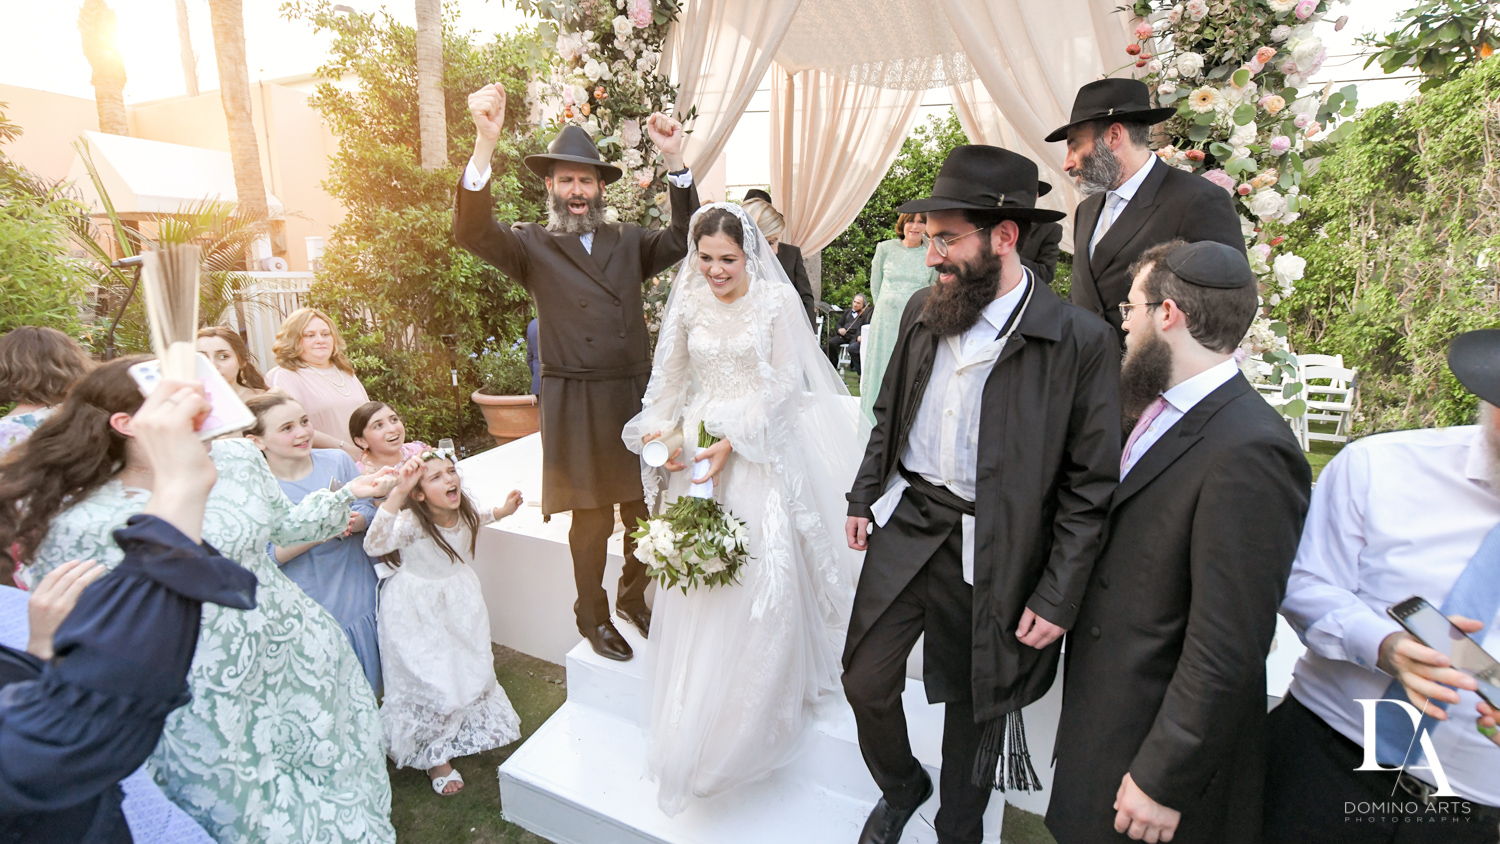 Just Married at Jewish Orthodox Wedding in Palm Beach by Domino Arts Photography